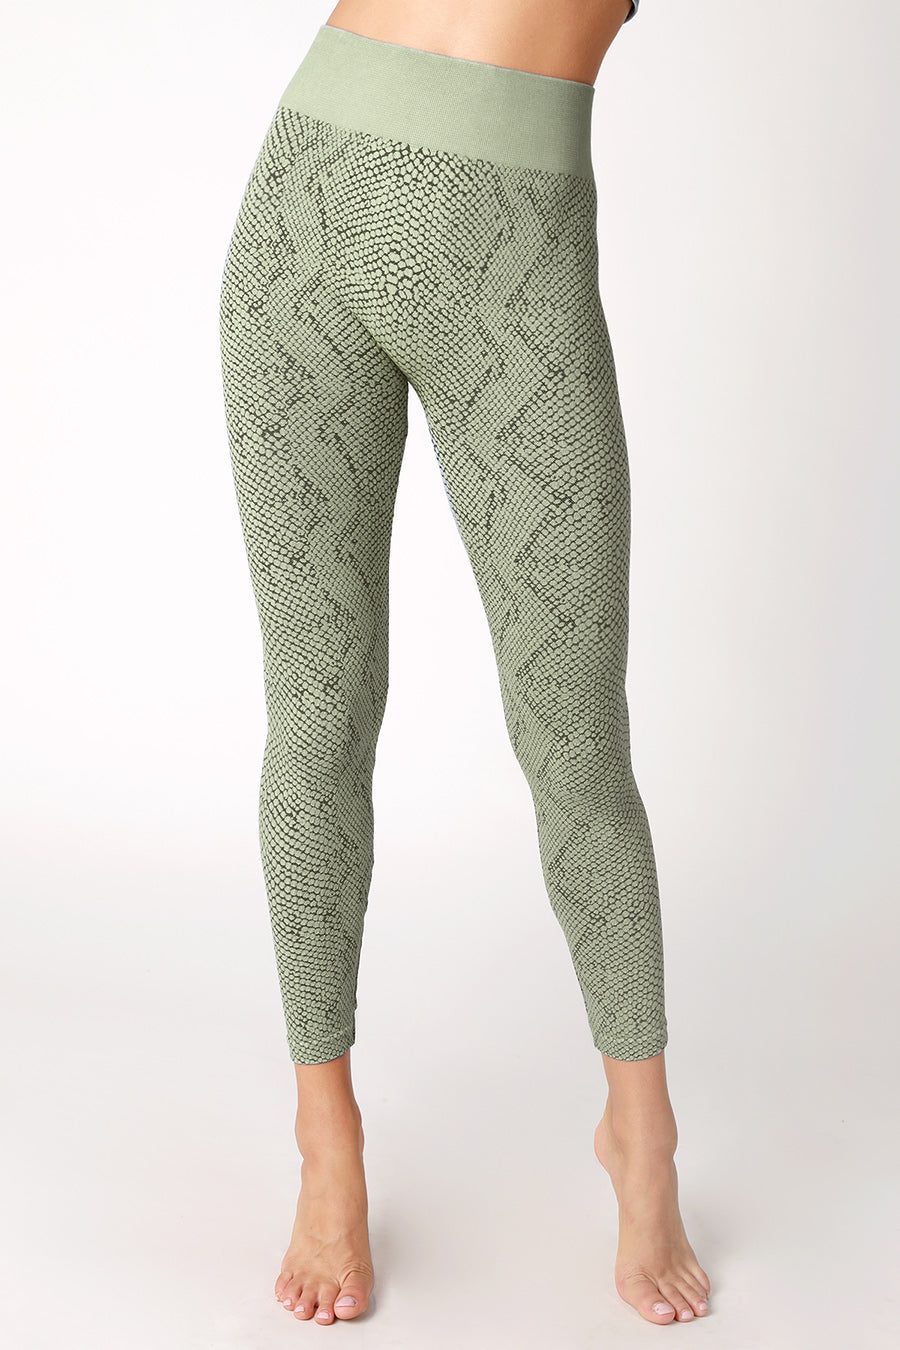 SNAKE SKIN LEGGINGS - Penny Lane Boutique